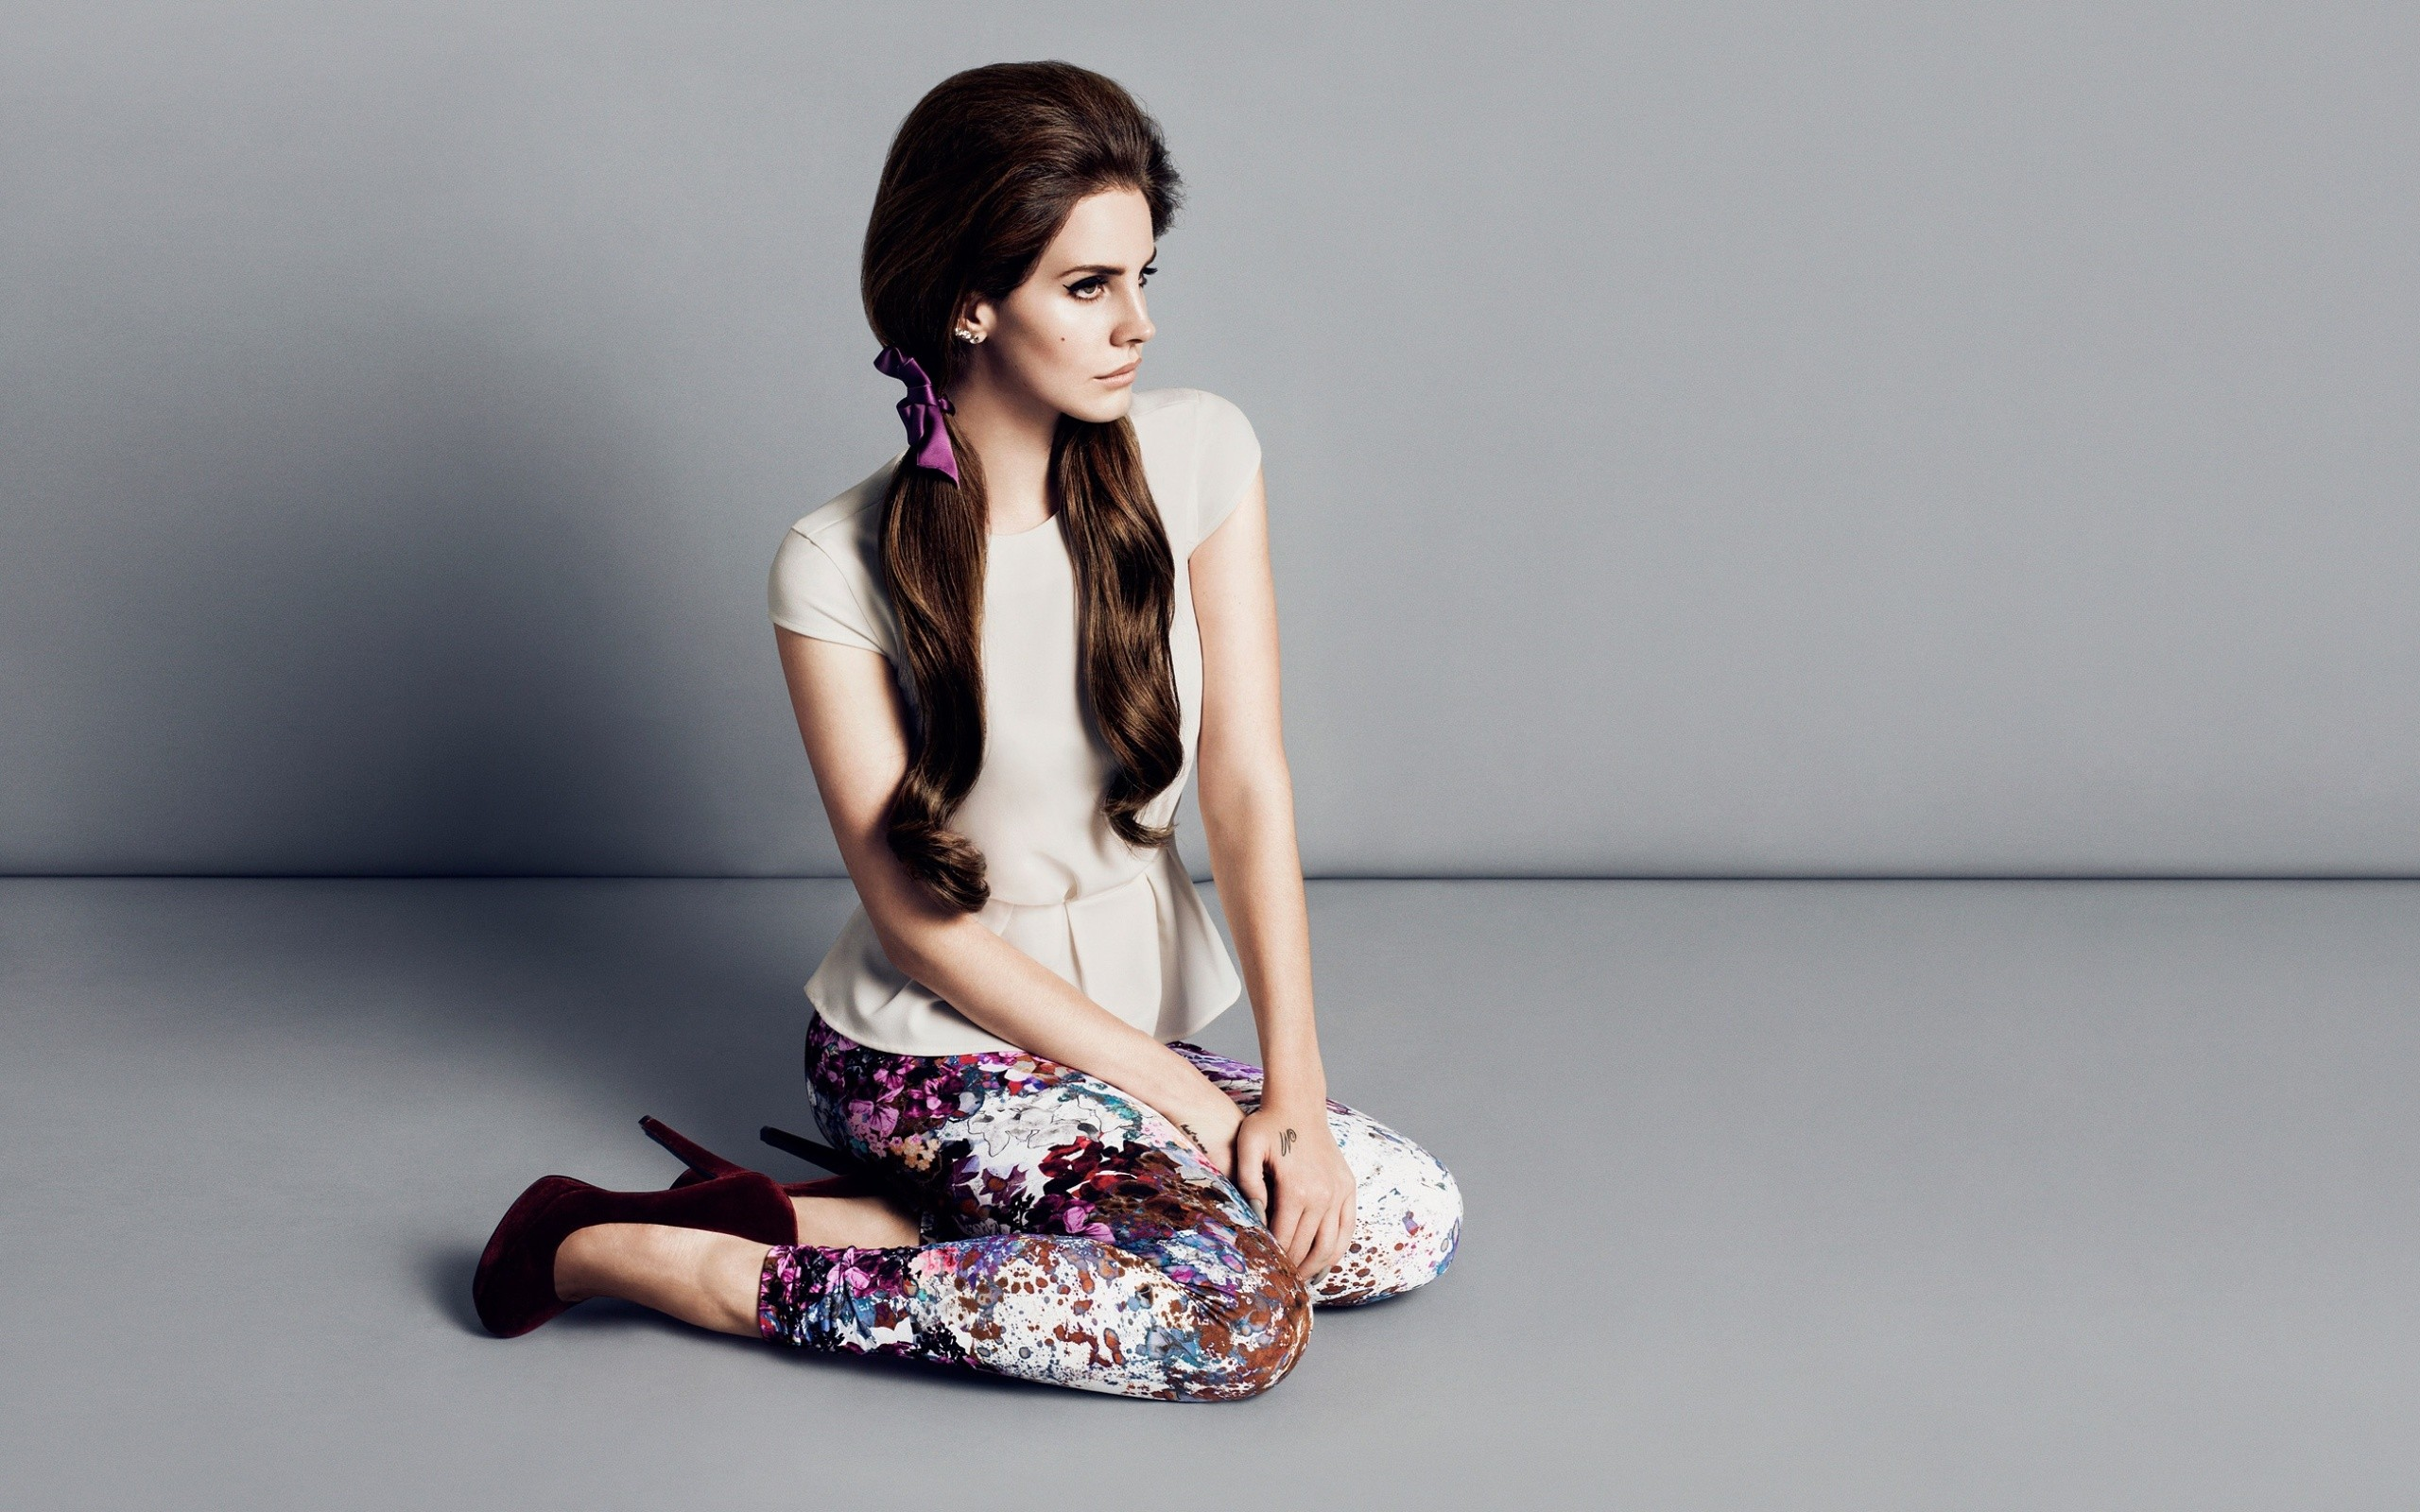 Lana Del Rey Hd Wallpapers 7wallpapers Net